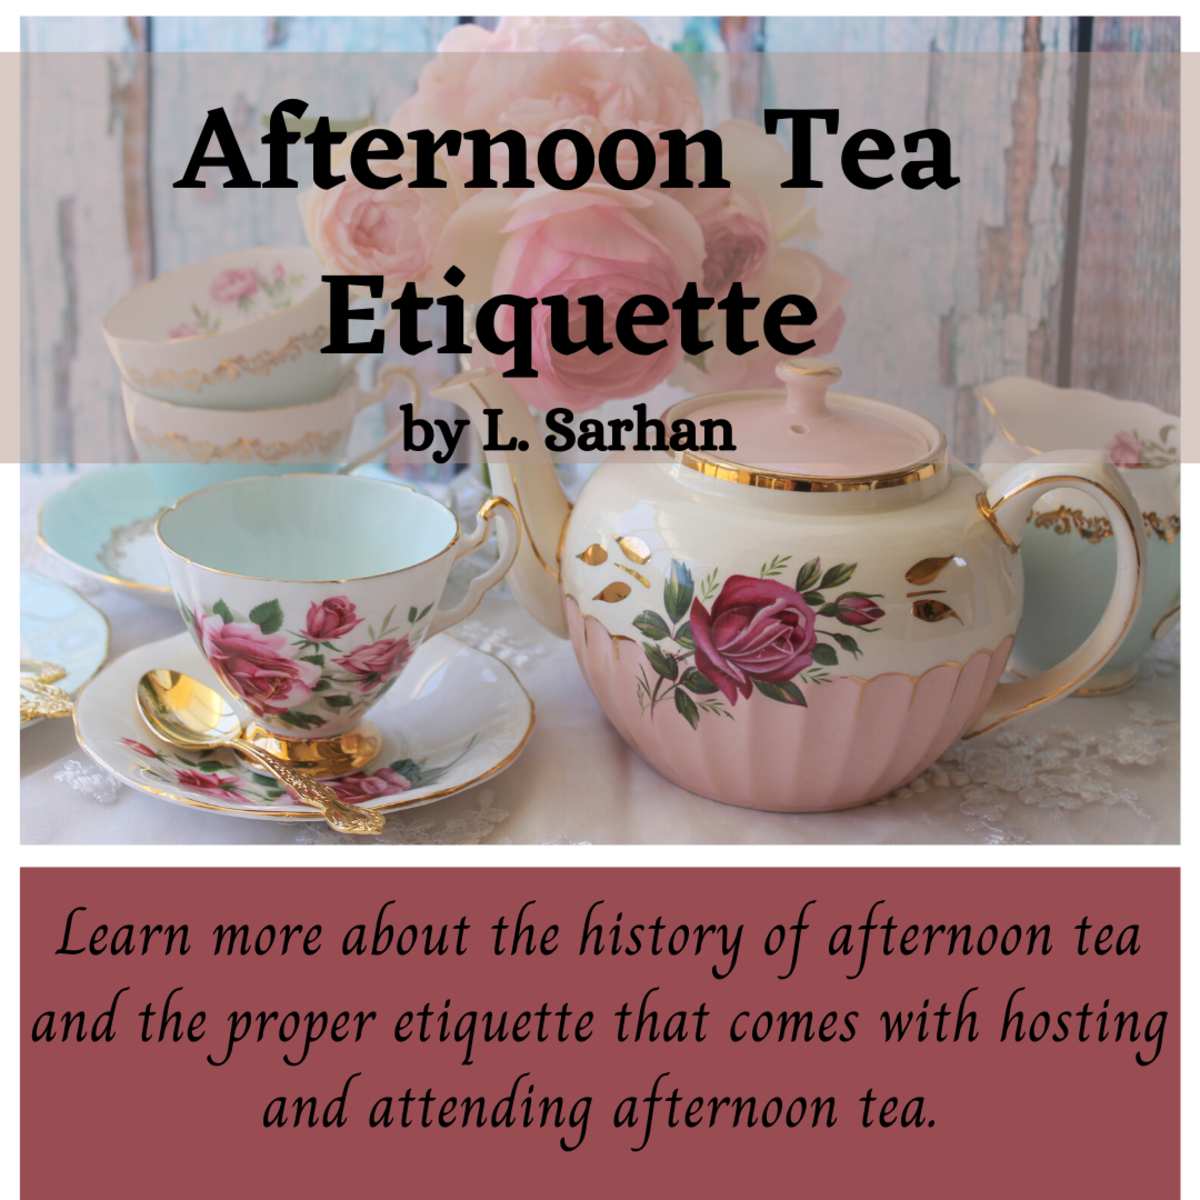 Learning proper etiquette is an important part of tea time.